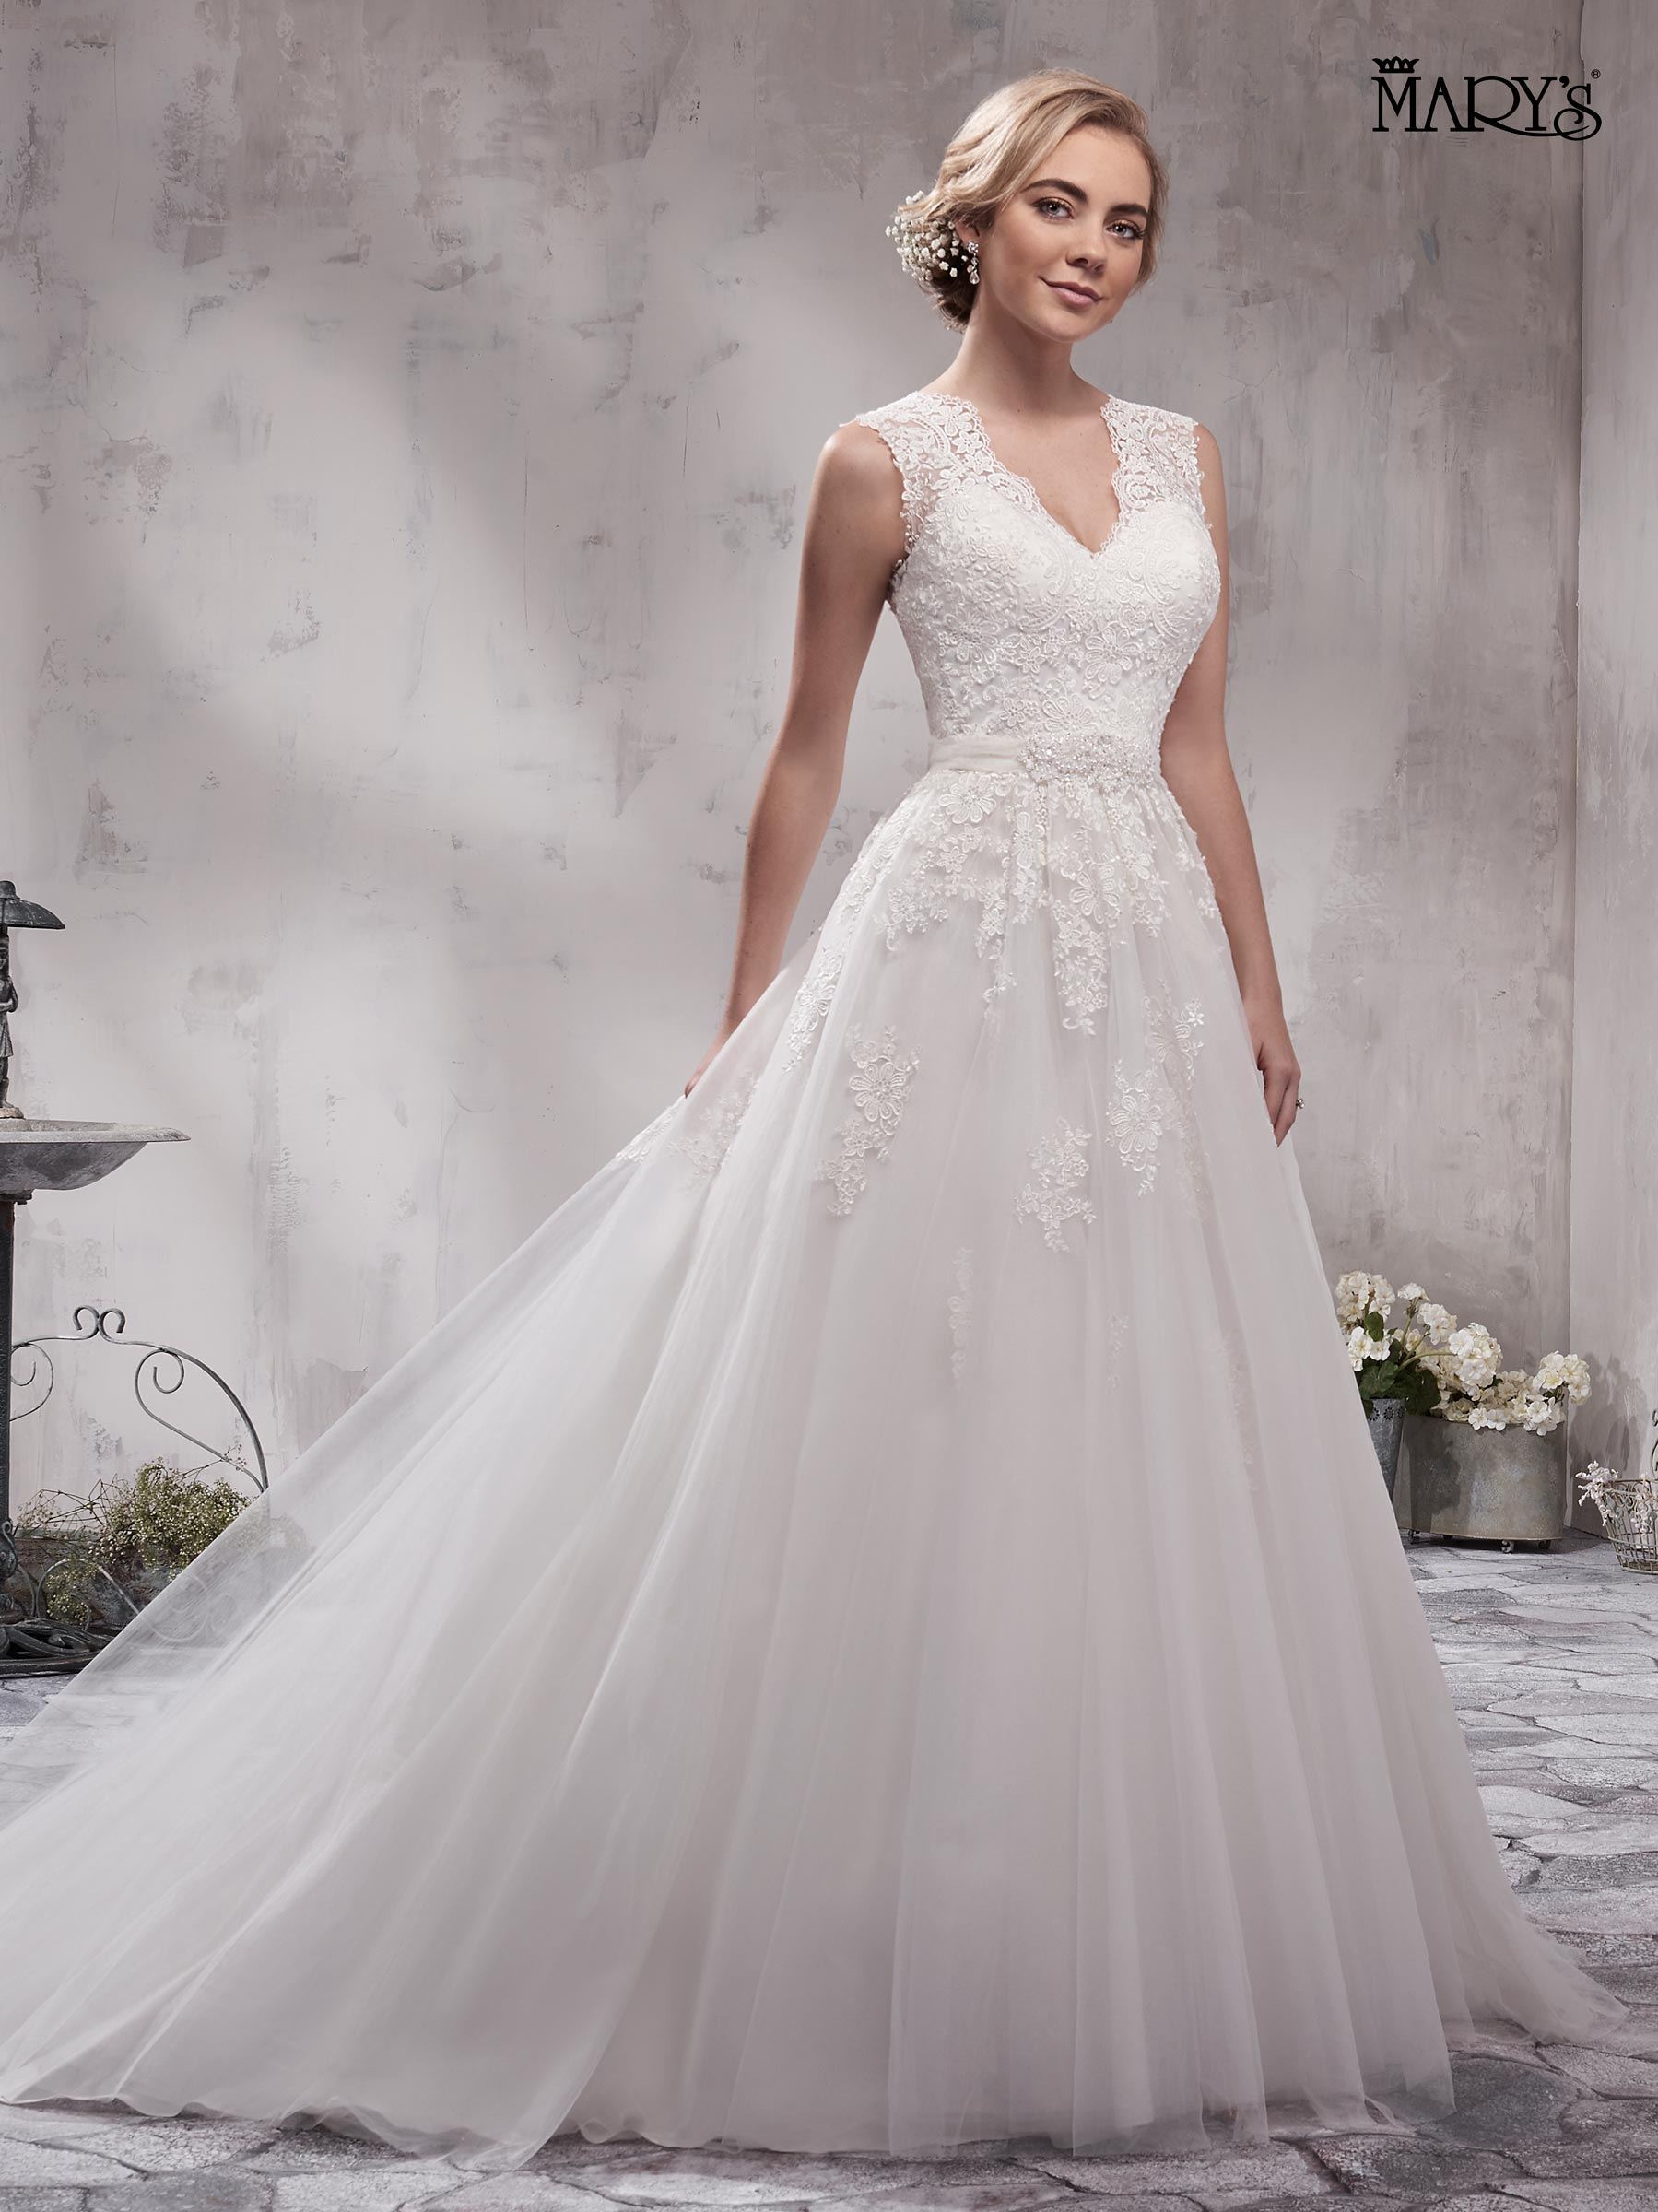 Bridal Wedding Dresses | Mary's | Style - MB3002